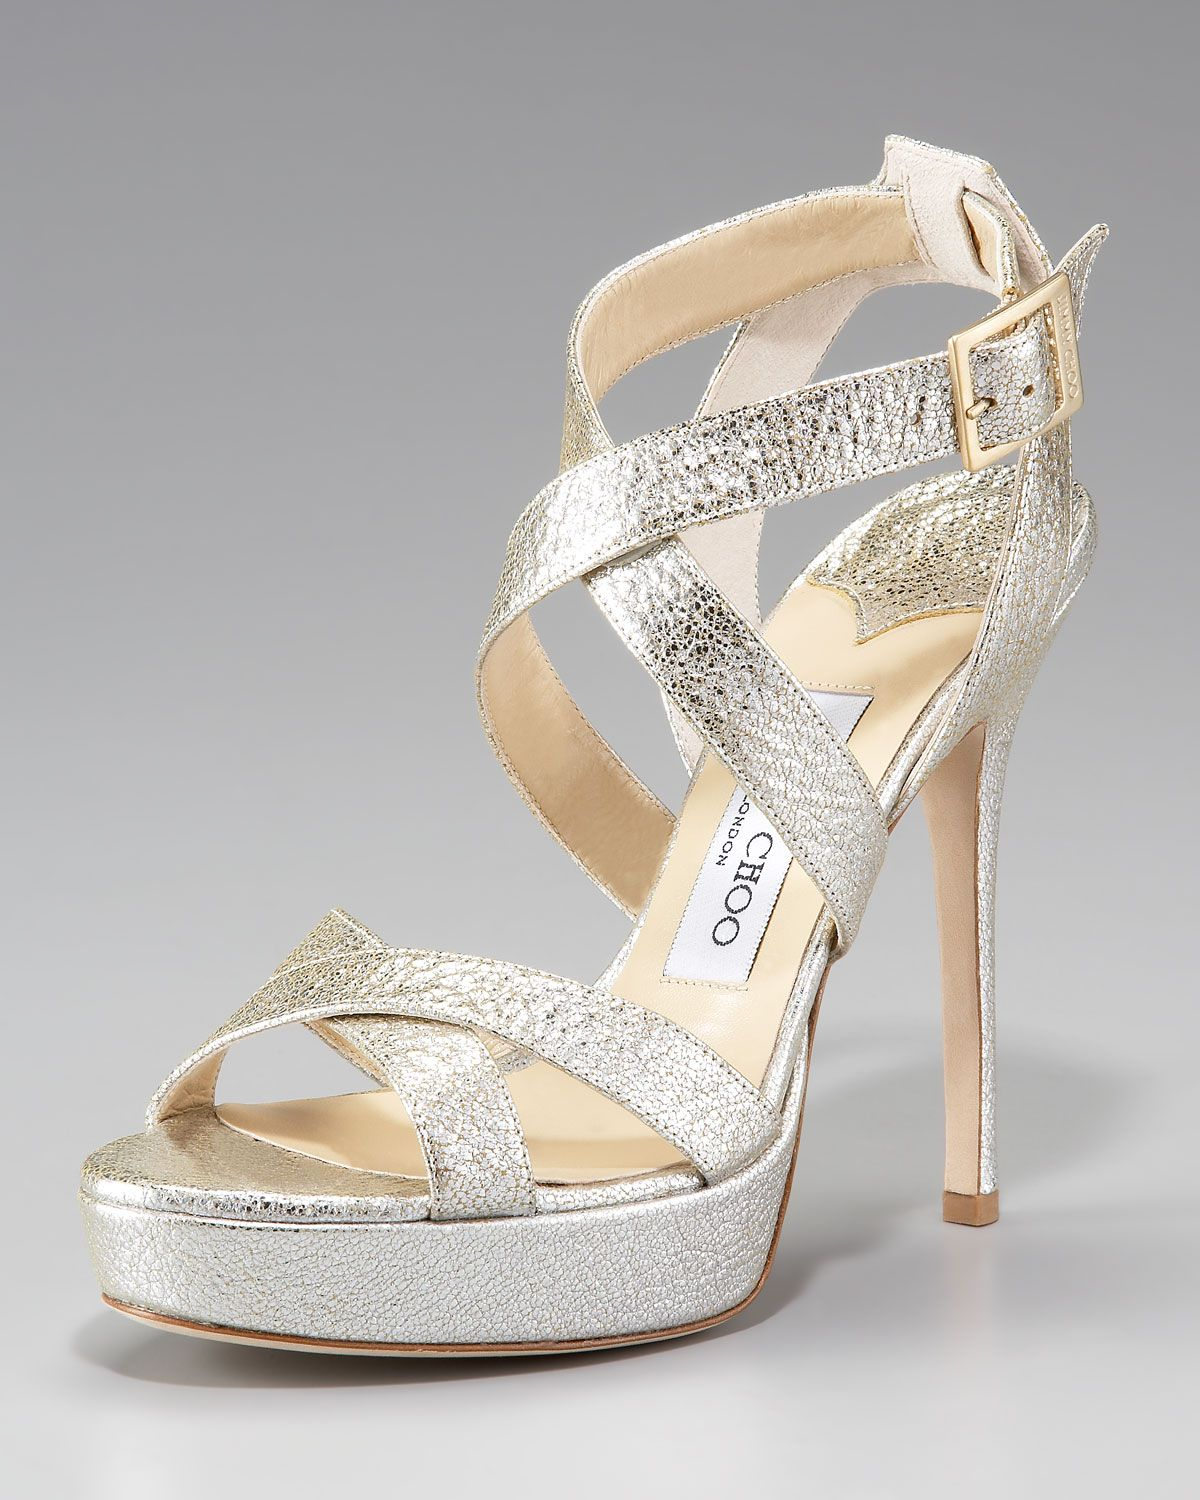 c191d5458c9e Jimmy Choo Vamp Crushed Metallic Platform Sandal in Gold (champagne ...